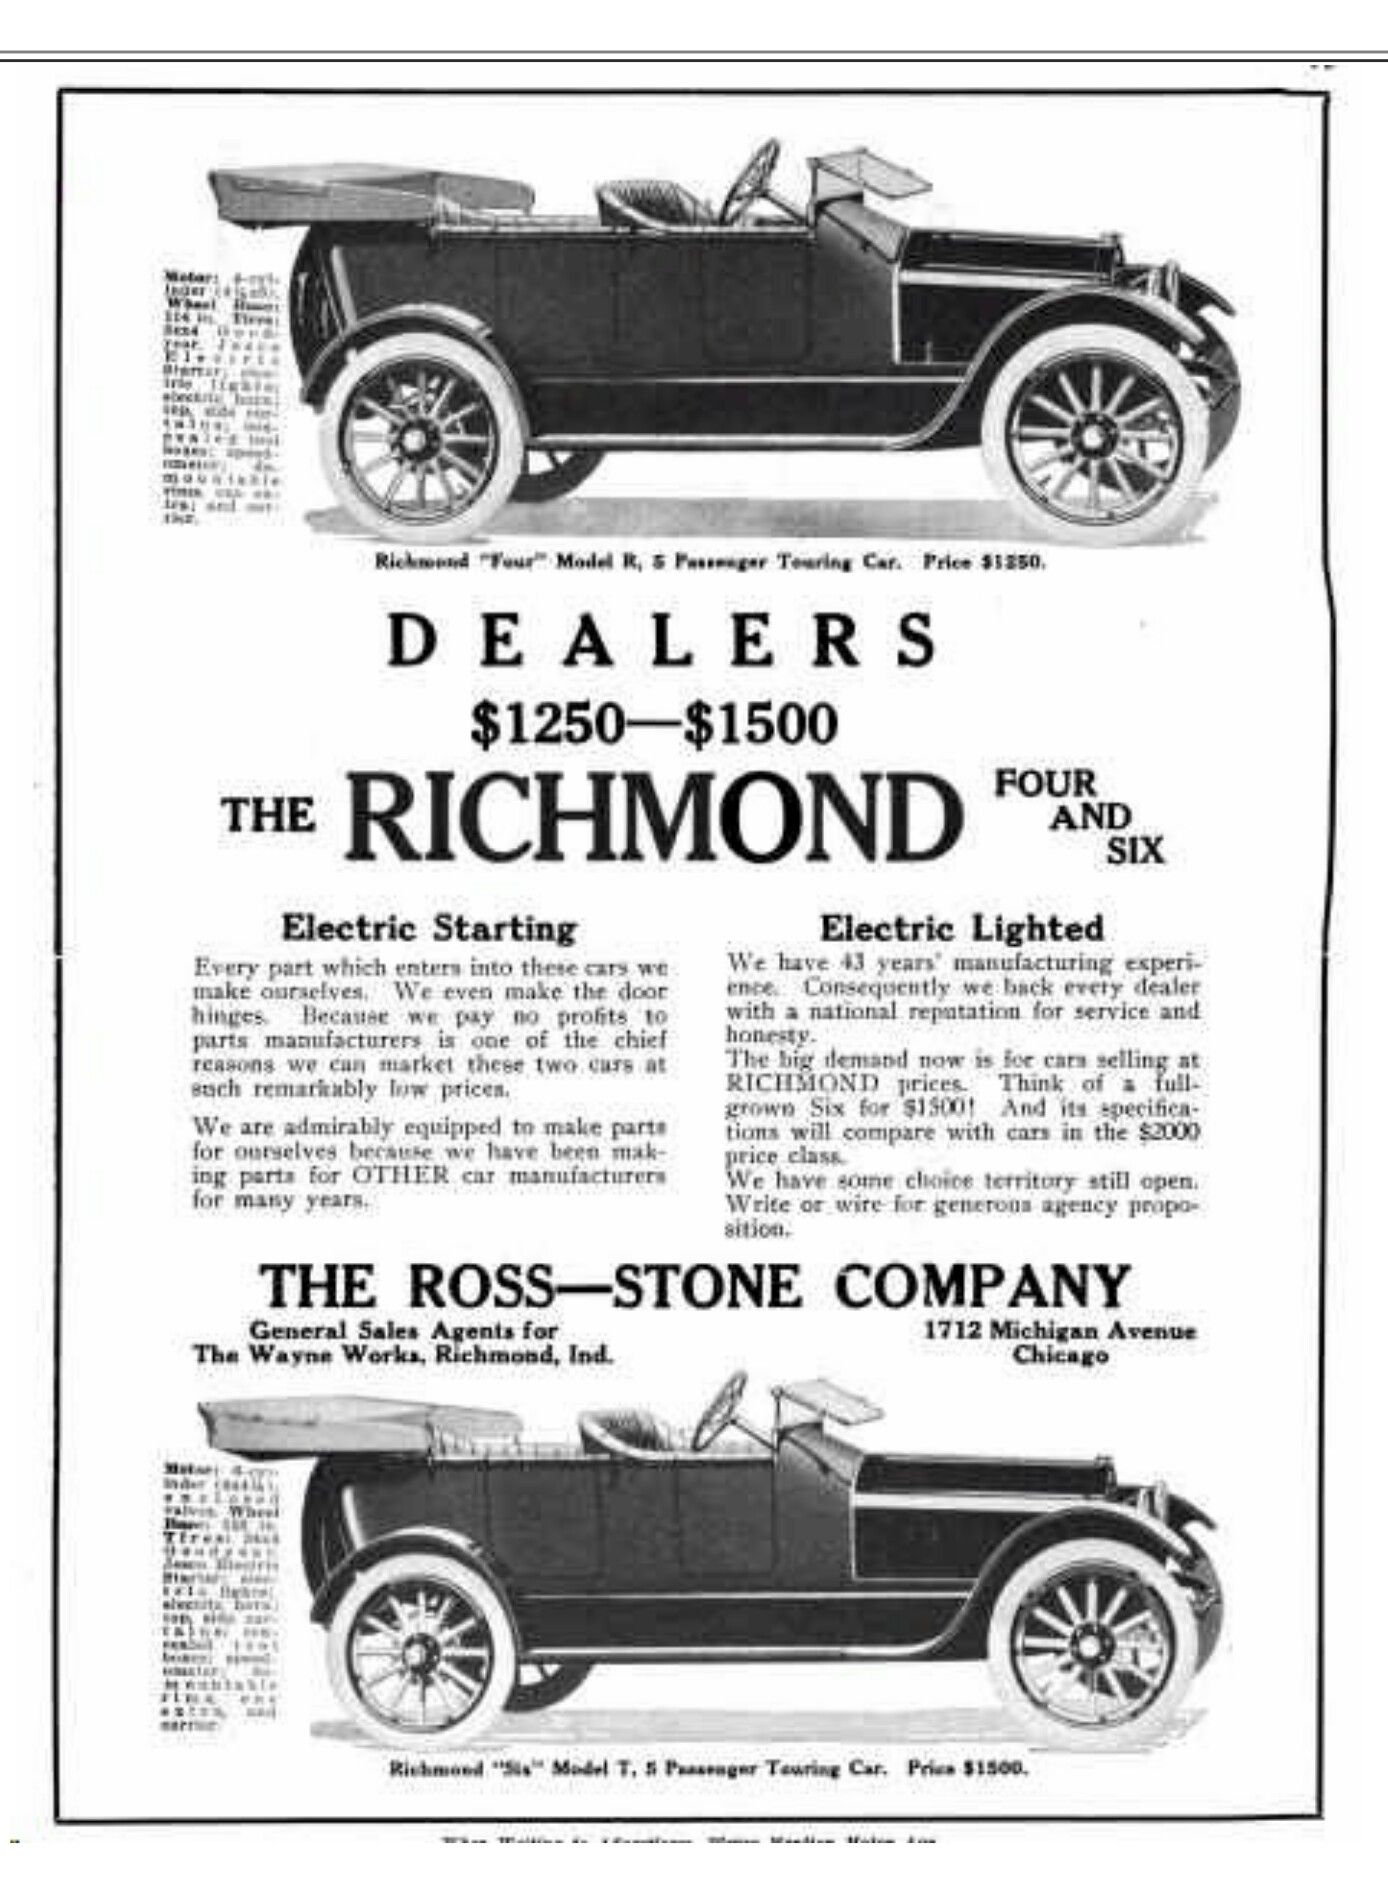 Defunct Vehicle Manufacturers Richmond 4 And 6 Car Advertising Automobile Ads